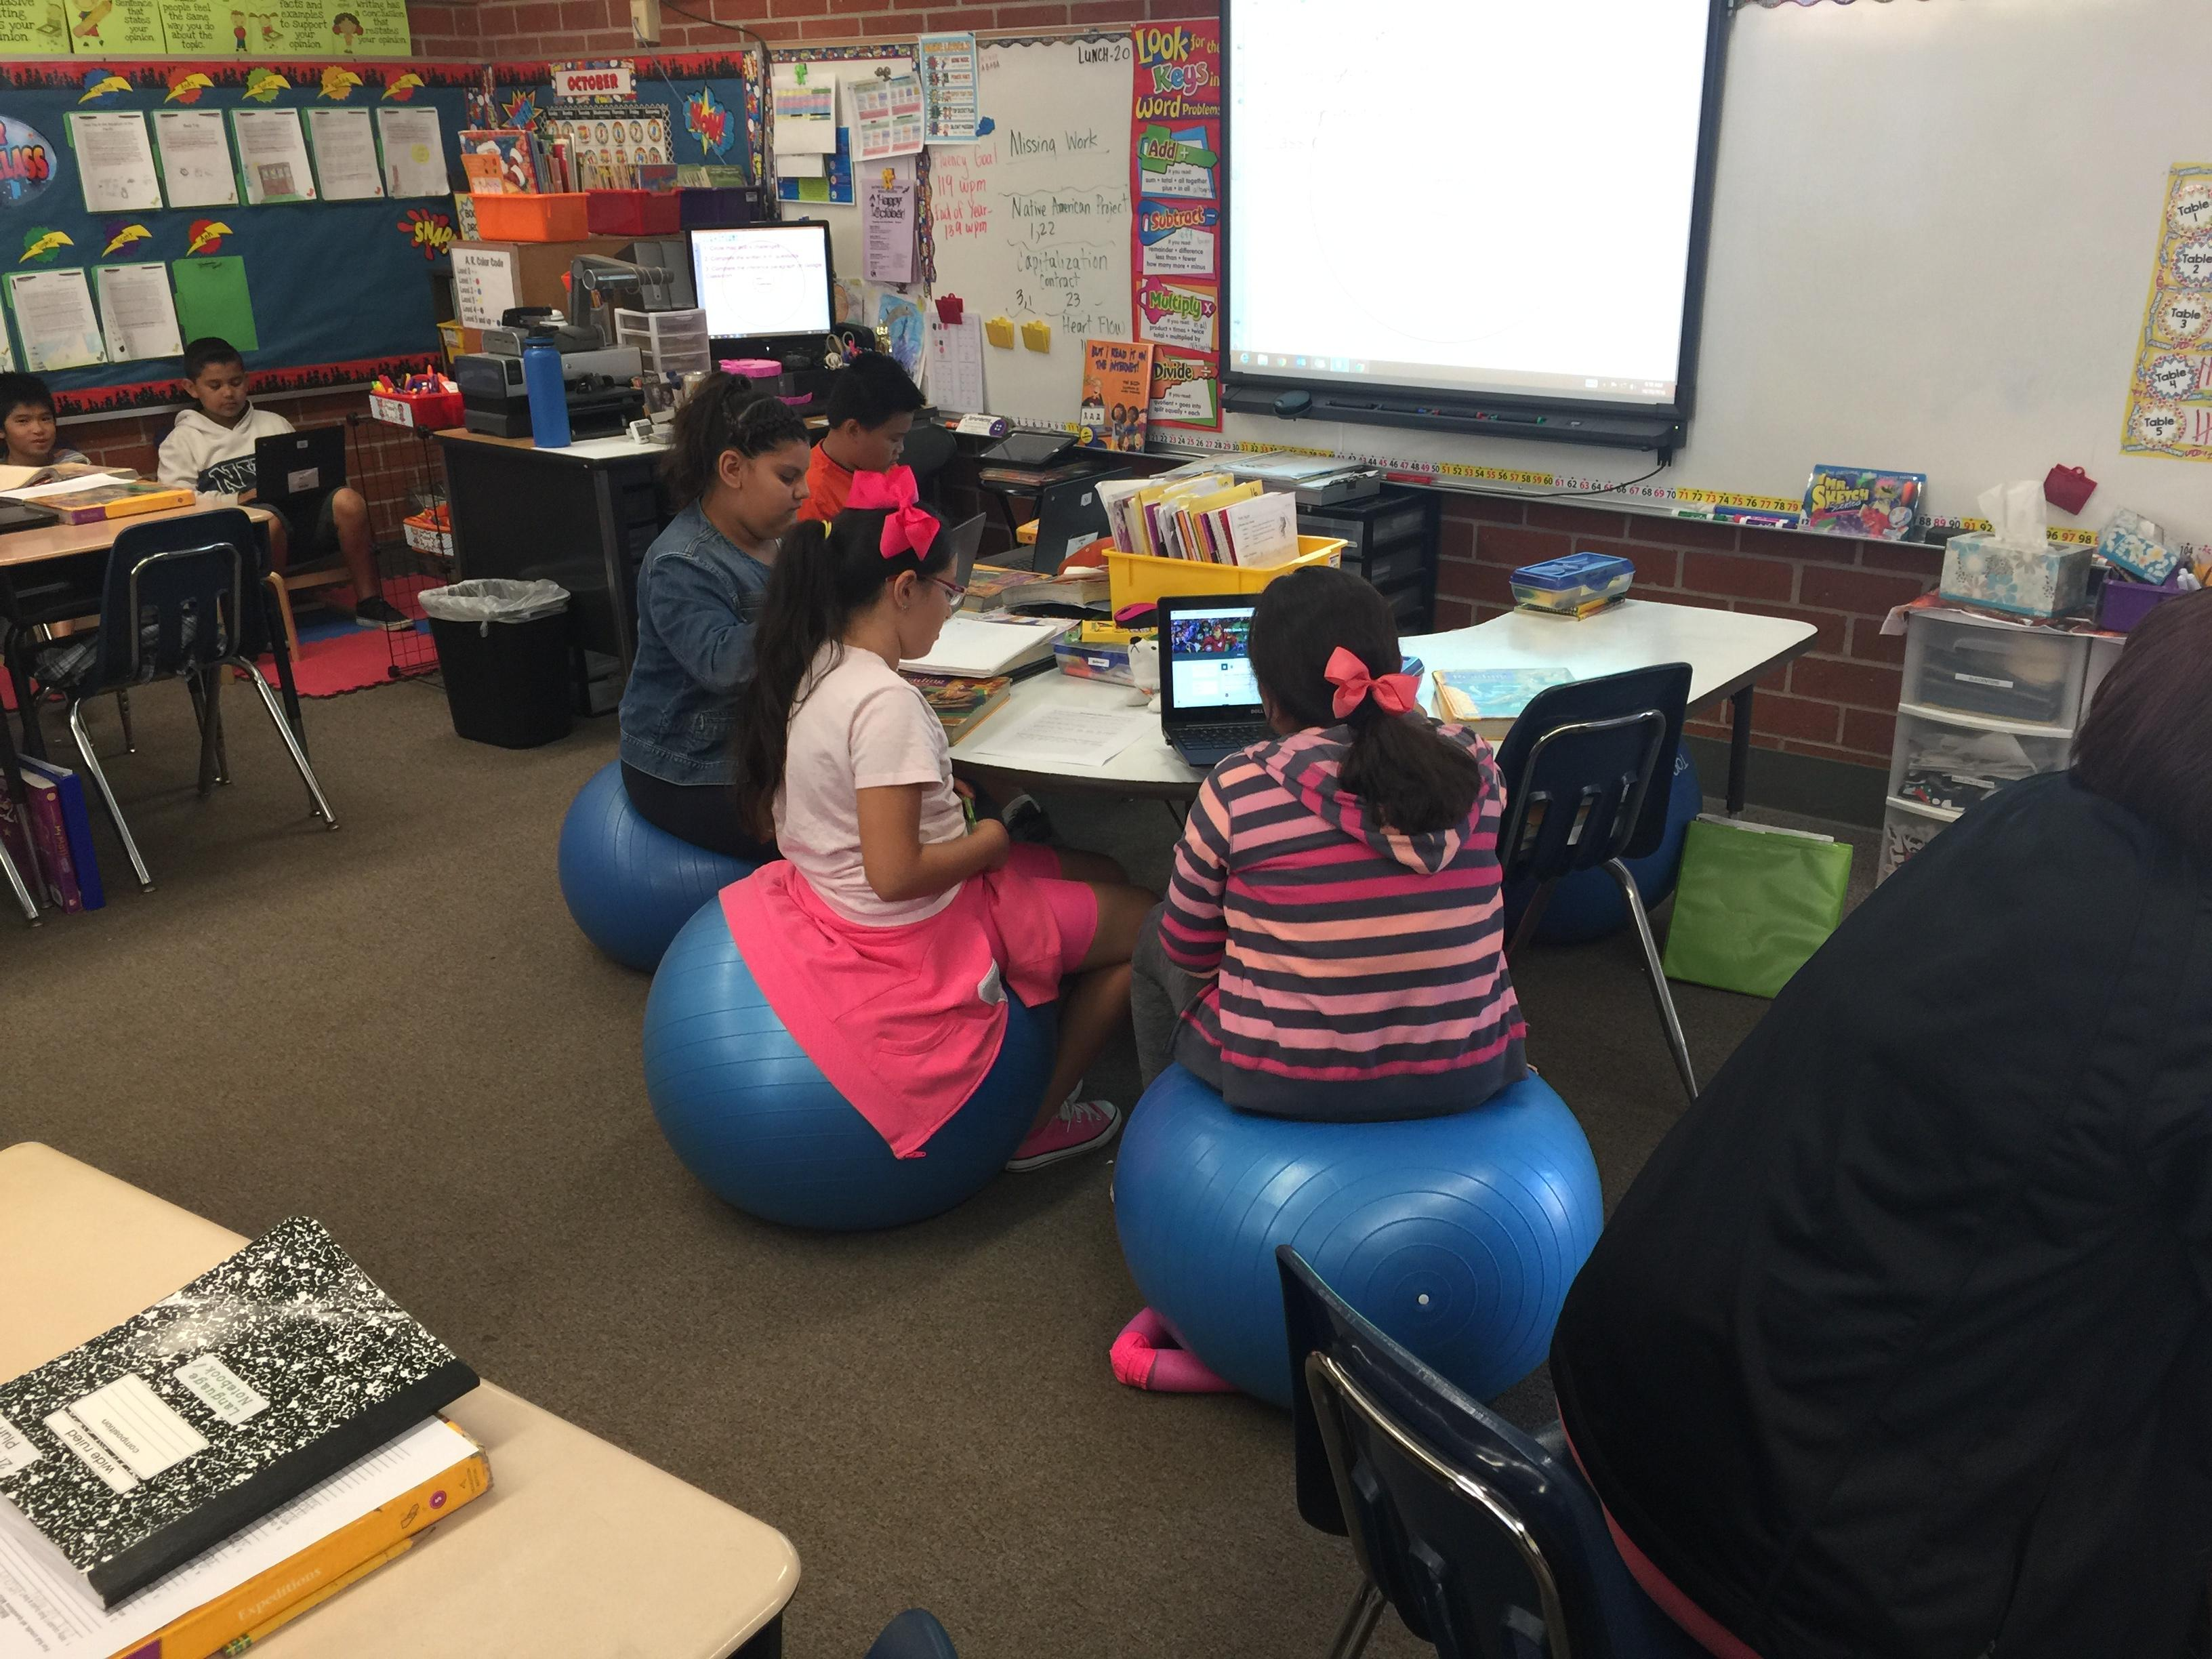 A classroom with several students doing work.  Three students in front sitting on inflatable ball chairs.